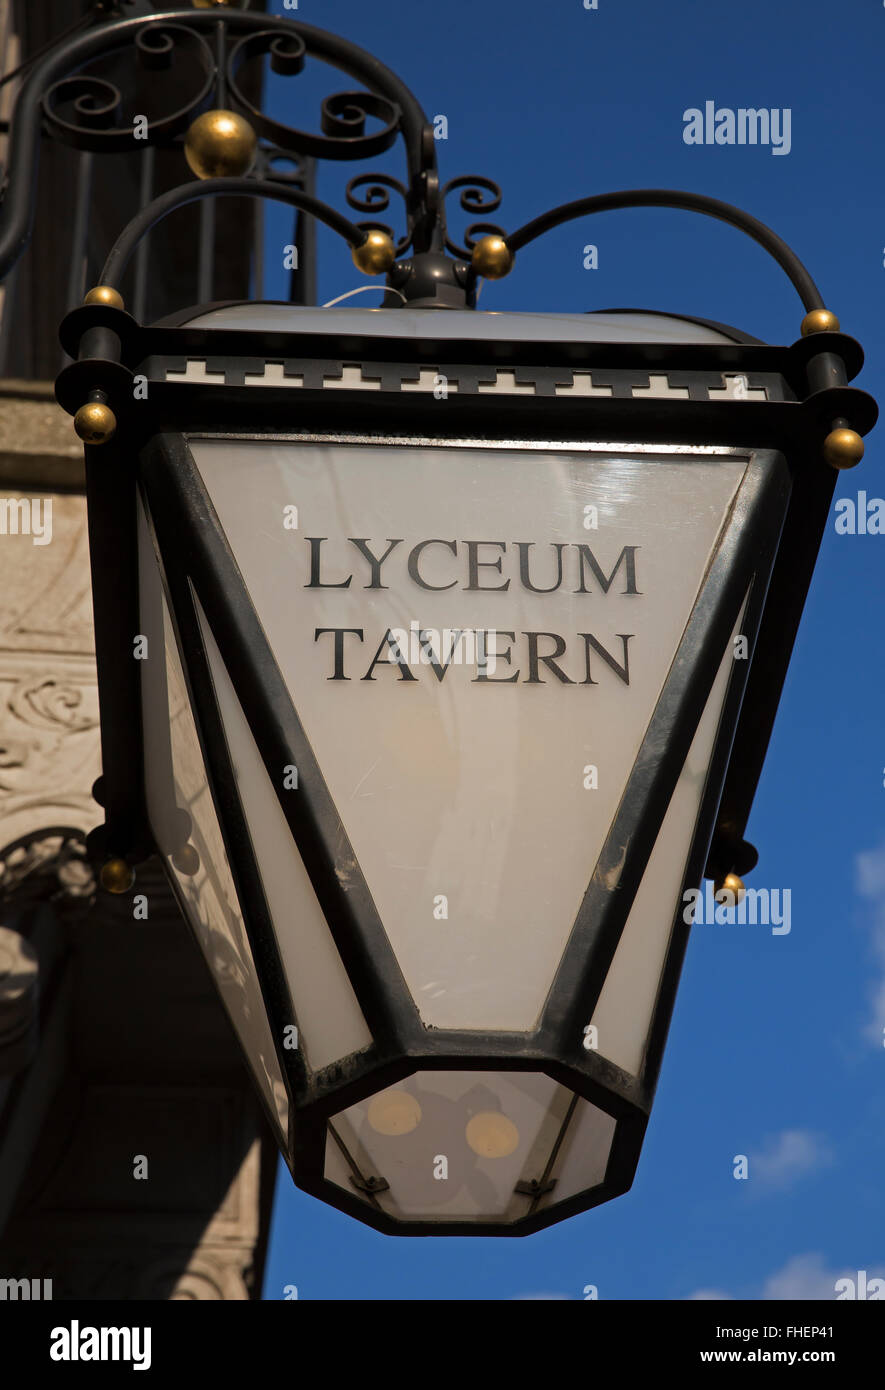 Lyceum Tavern glass light in the Strand London - Stock Image